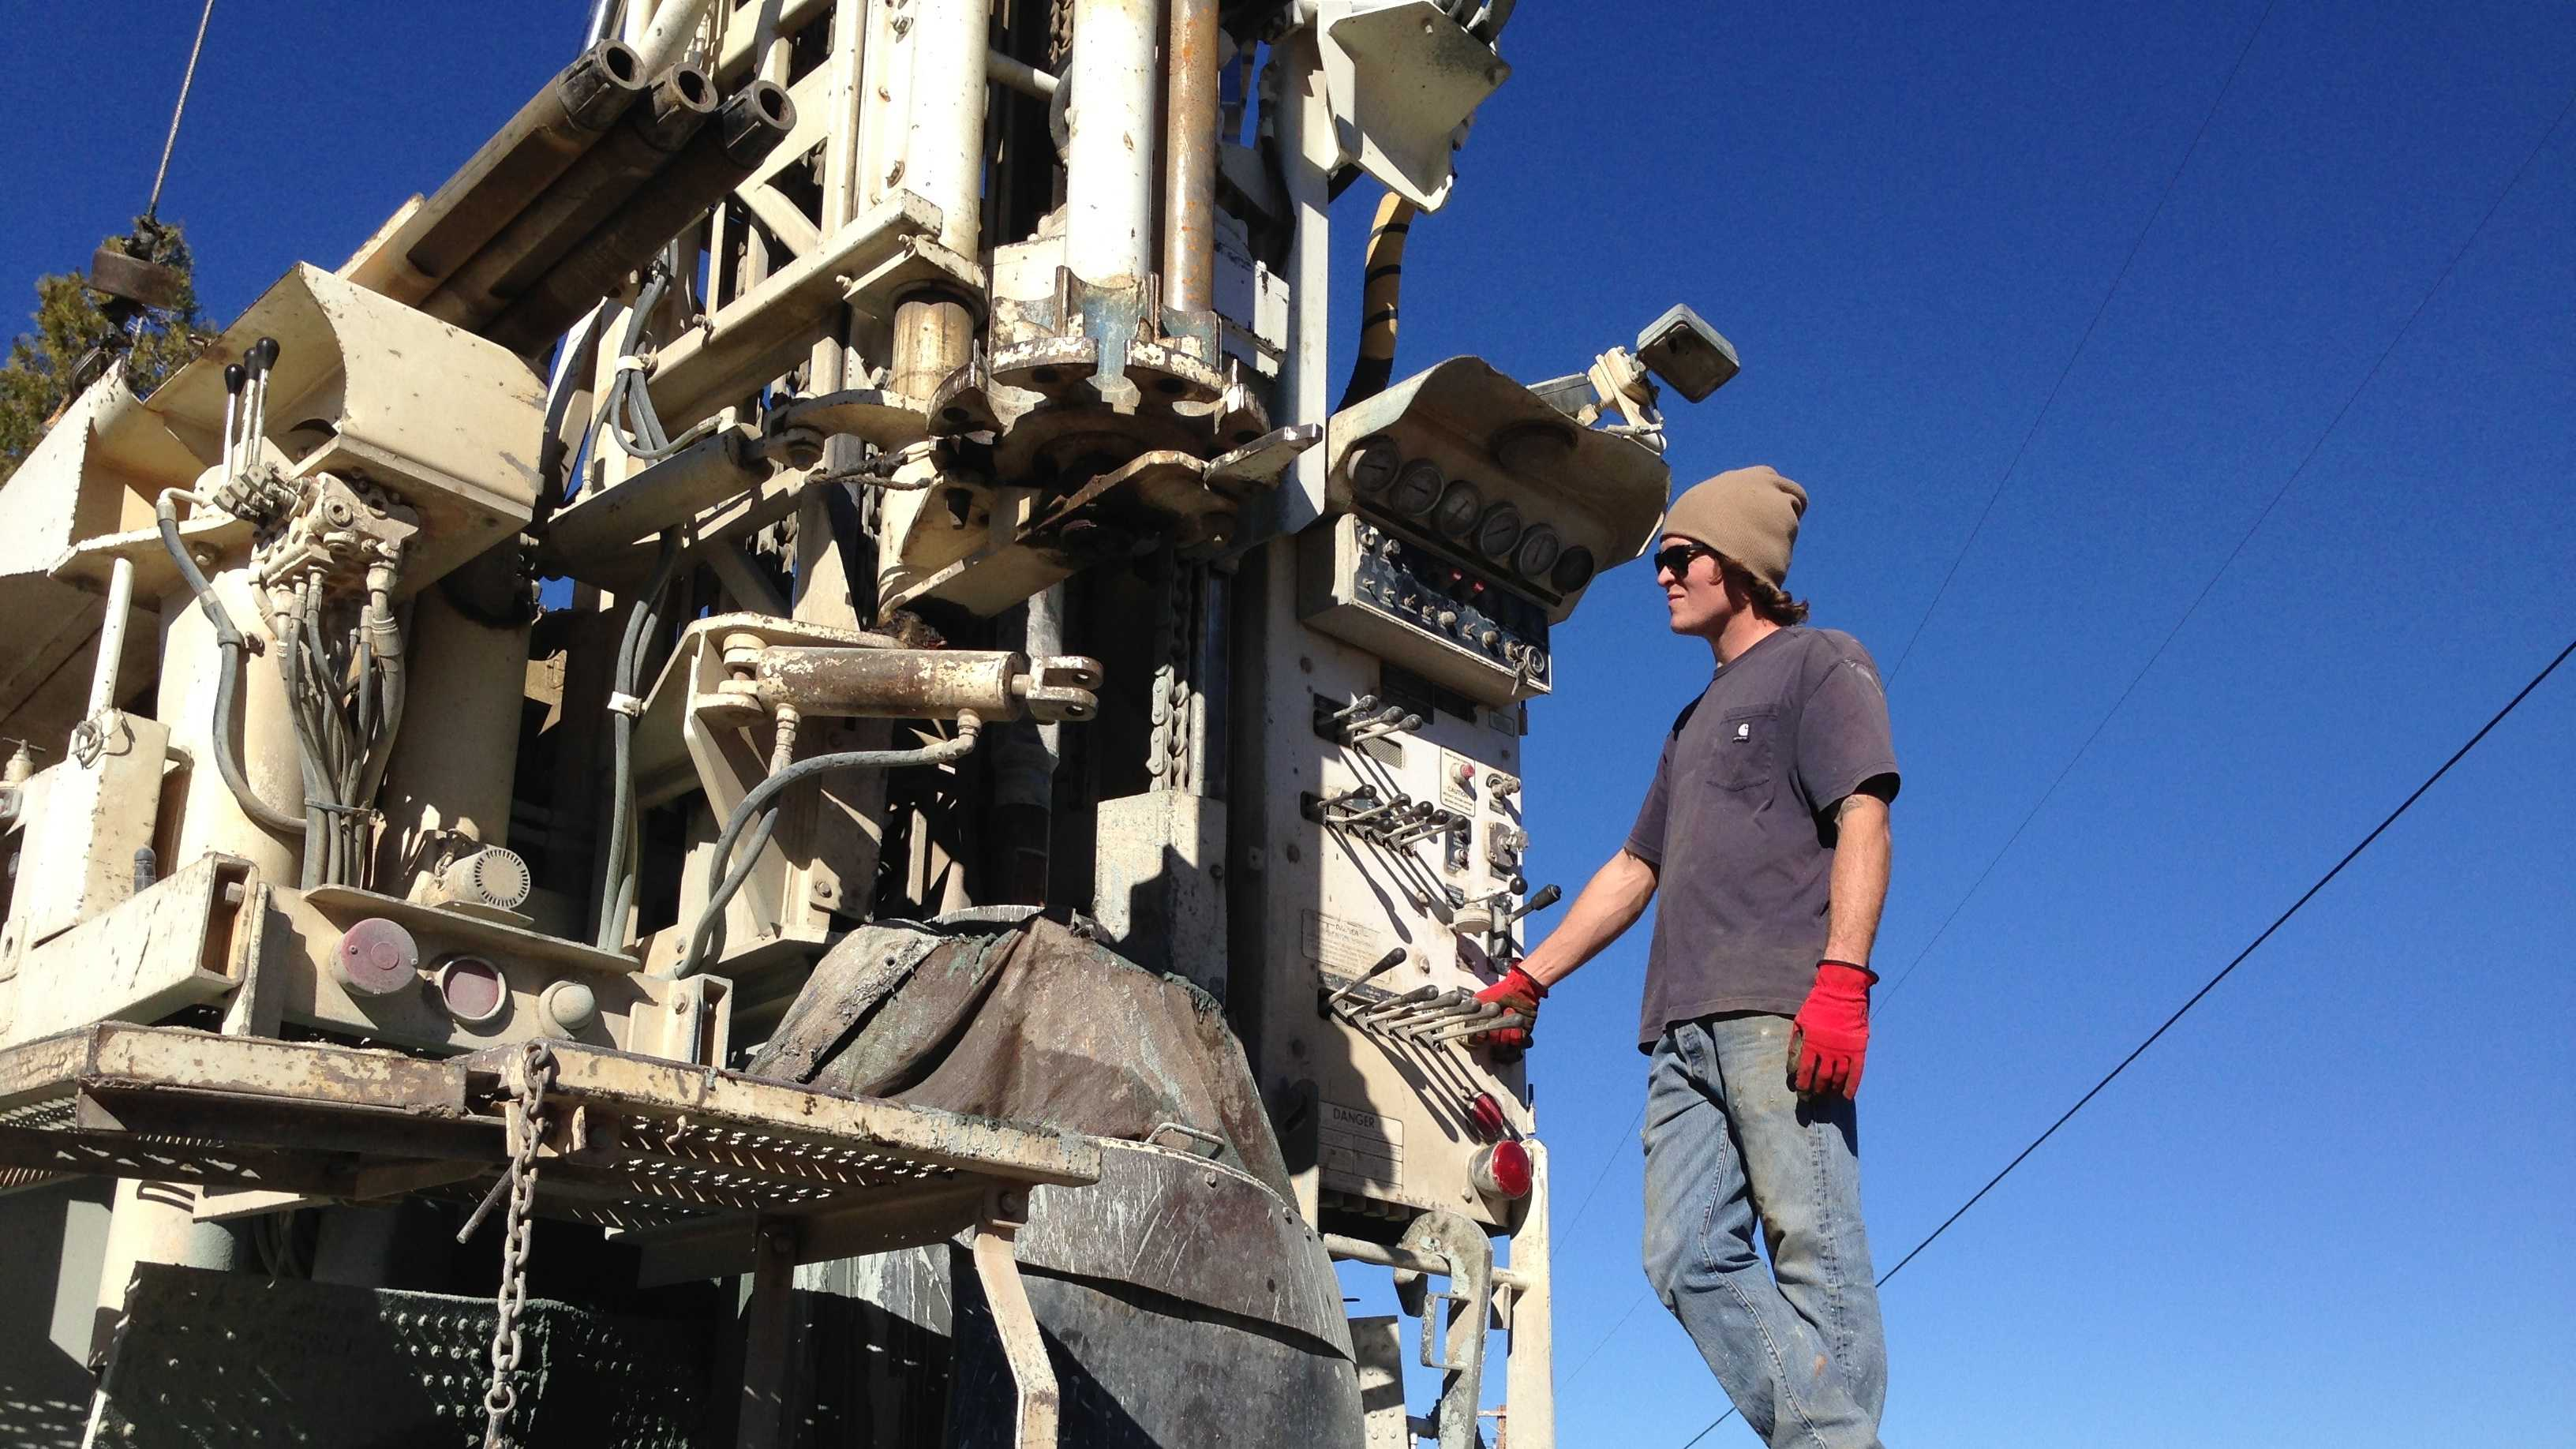 Foothills well drilling